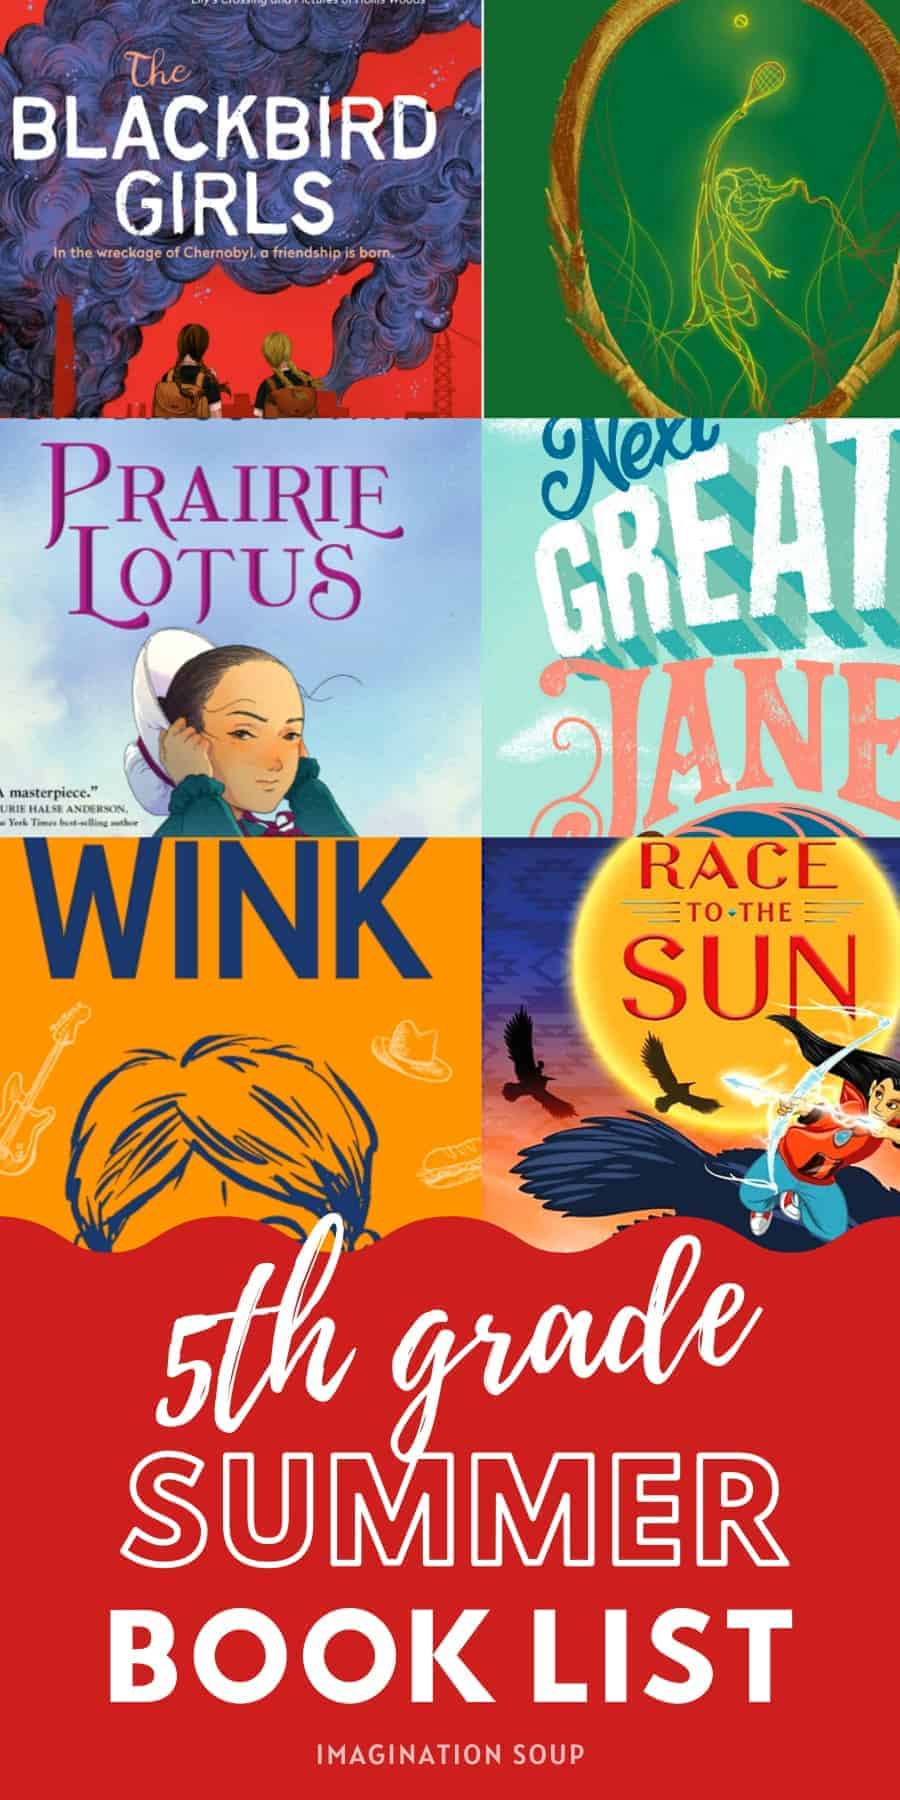 5th Grade Summer Reading List (Ages 10 - 11)